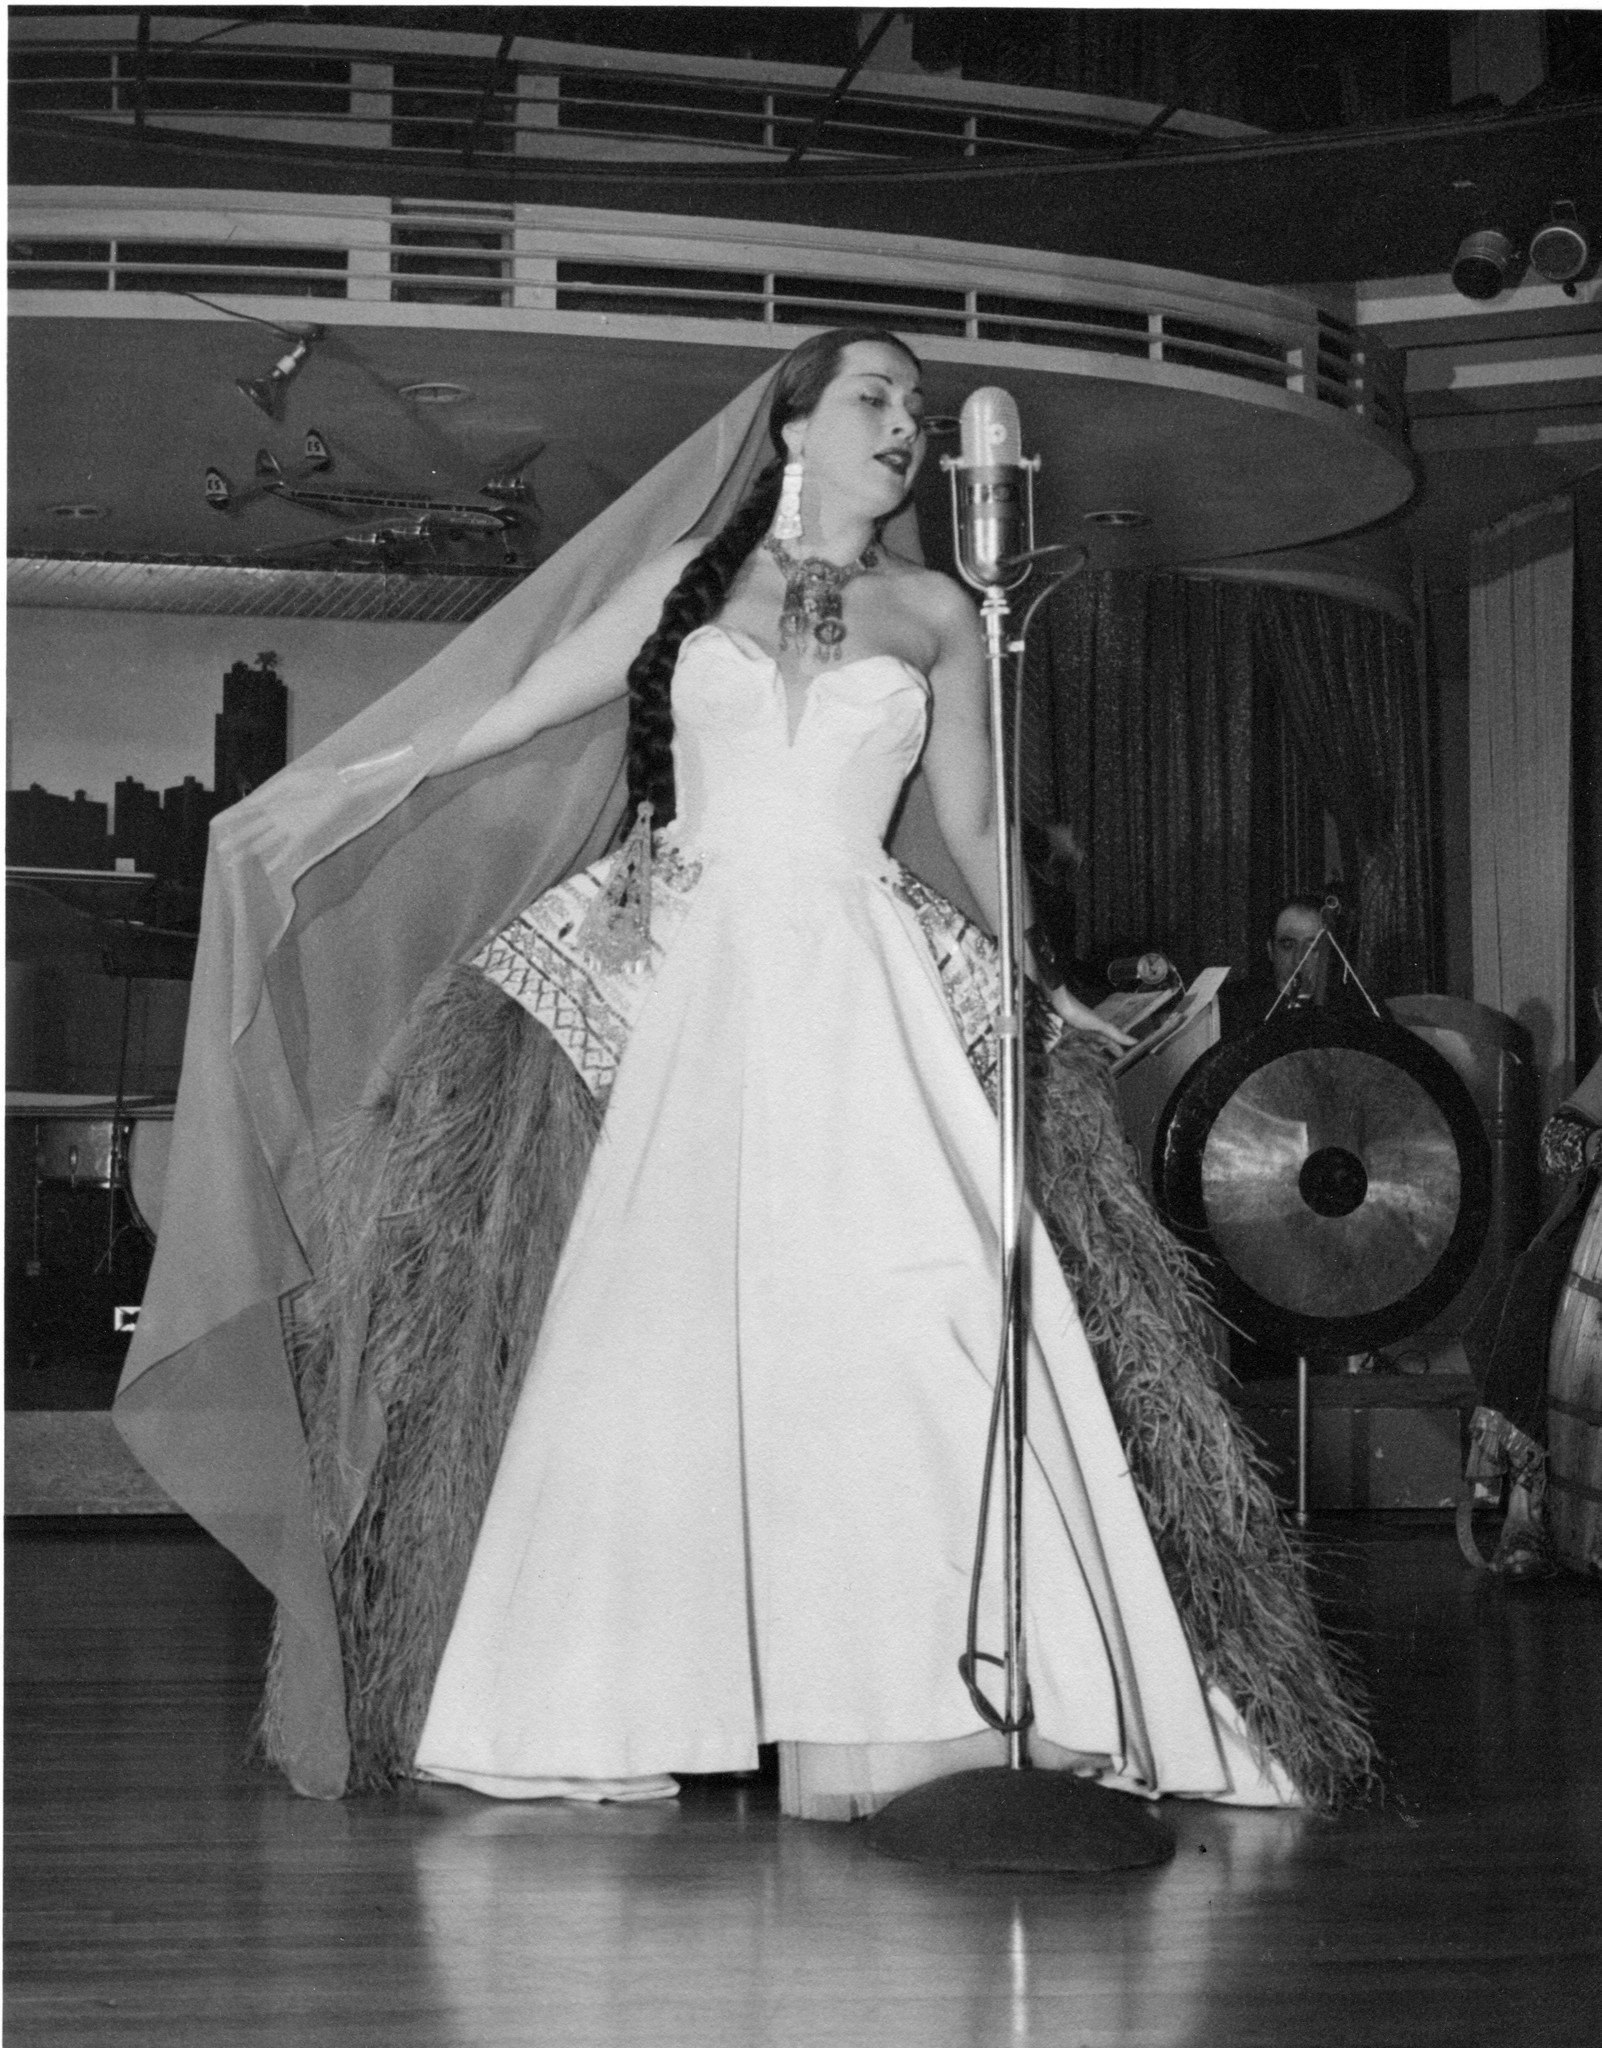 Sumac performing in 1952 — an image from her personal archive.